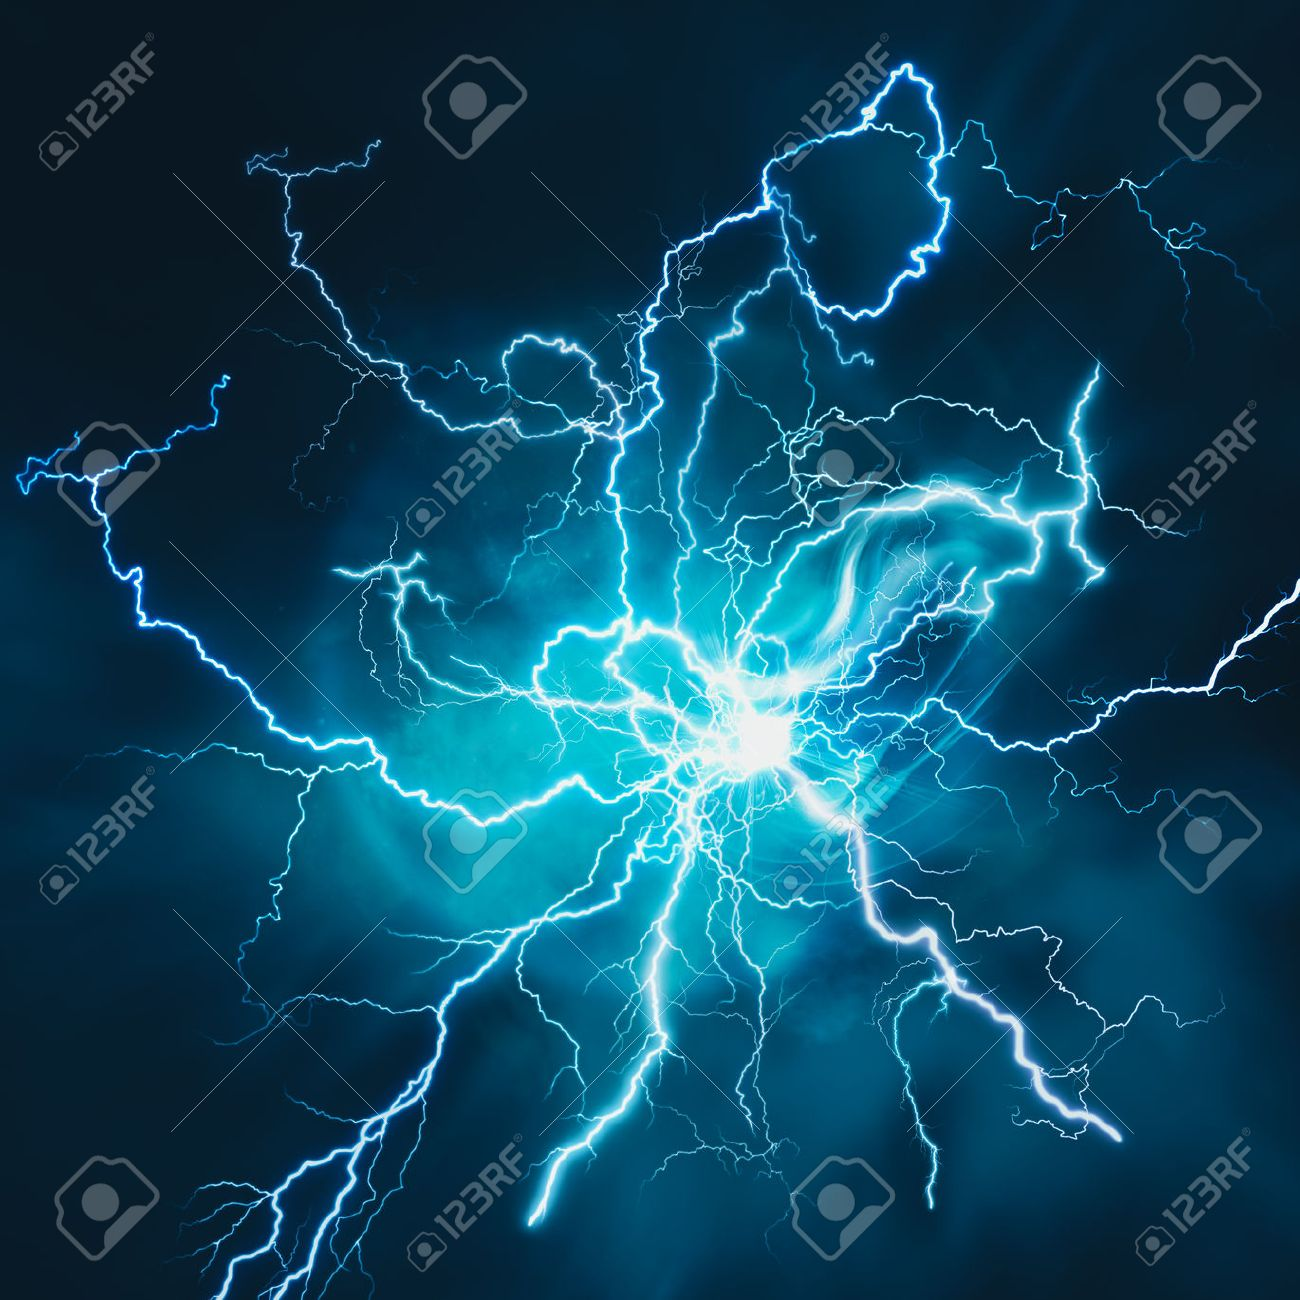 Electric Storm Abstract Science And Power Industry Backgrounds 1300x1300